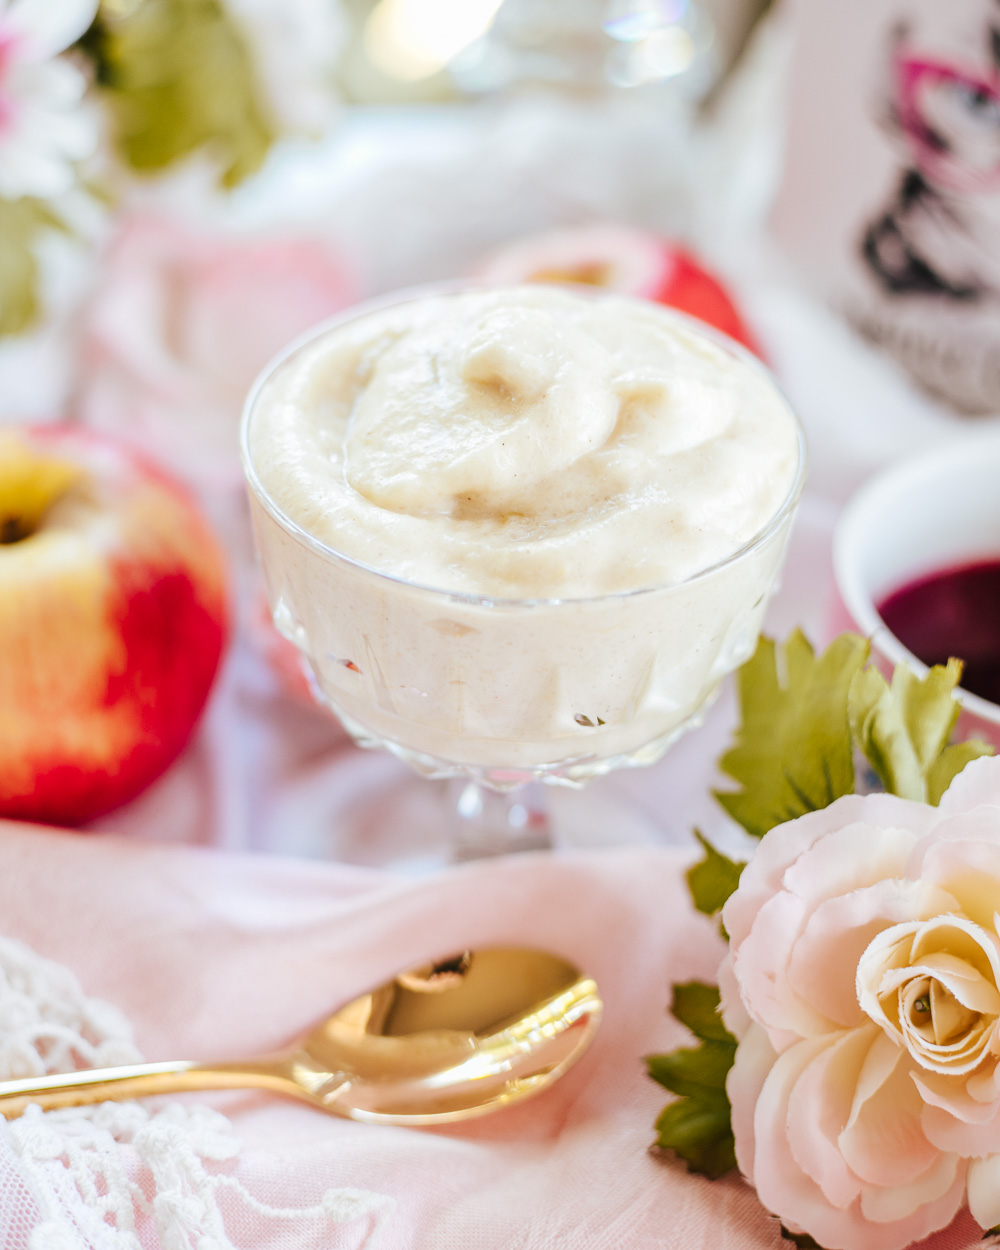 The Healthy Semolina Apple Mousse is indulgent, easy to make, low-calorie, fat-free, all-natural, vegan, low-sugar and super-yummy!